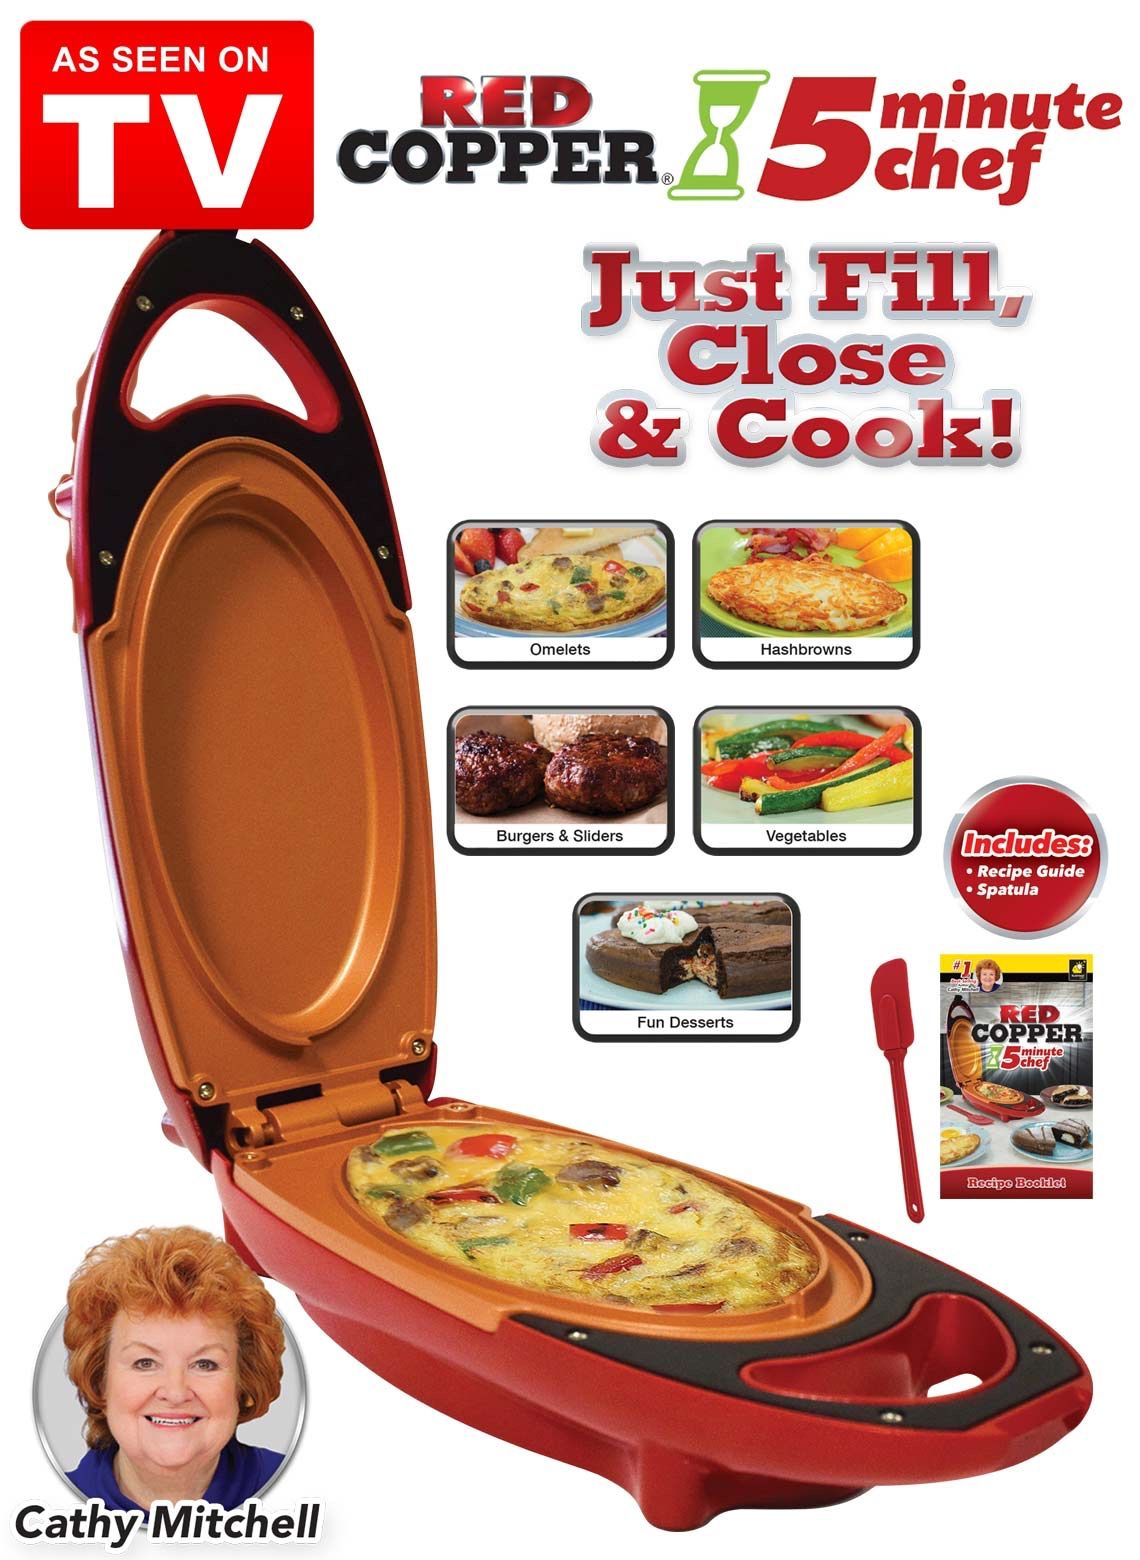 Red copper 5 minute chef electric meal maker